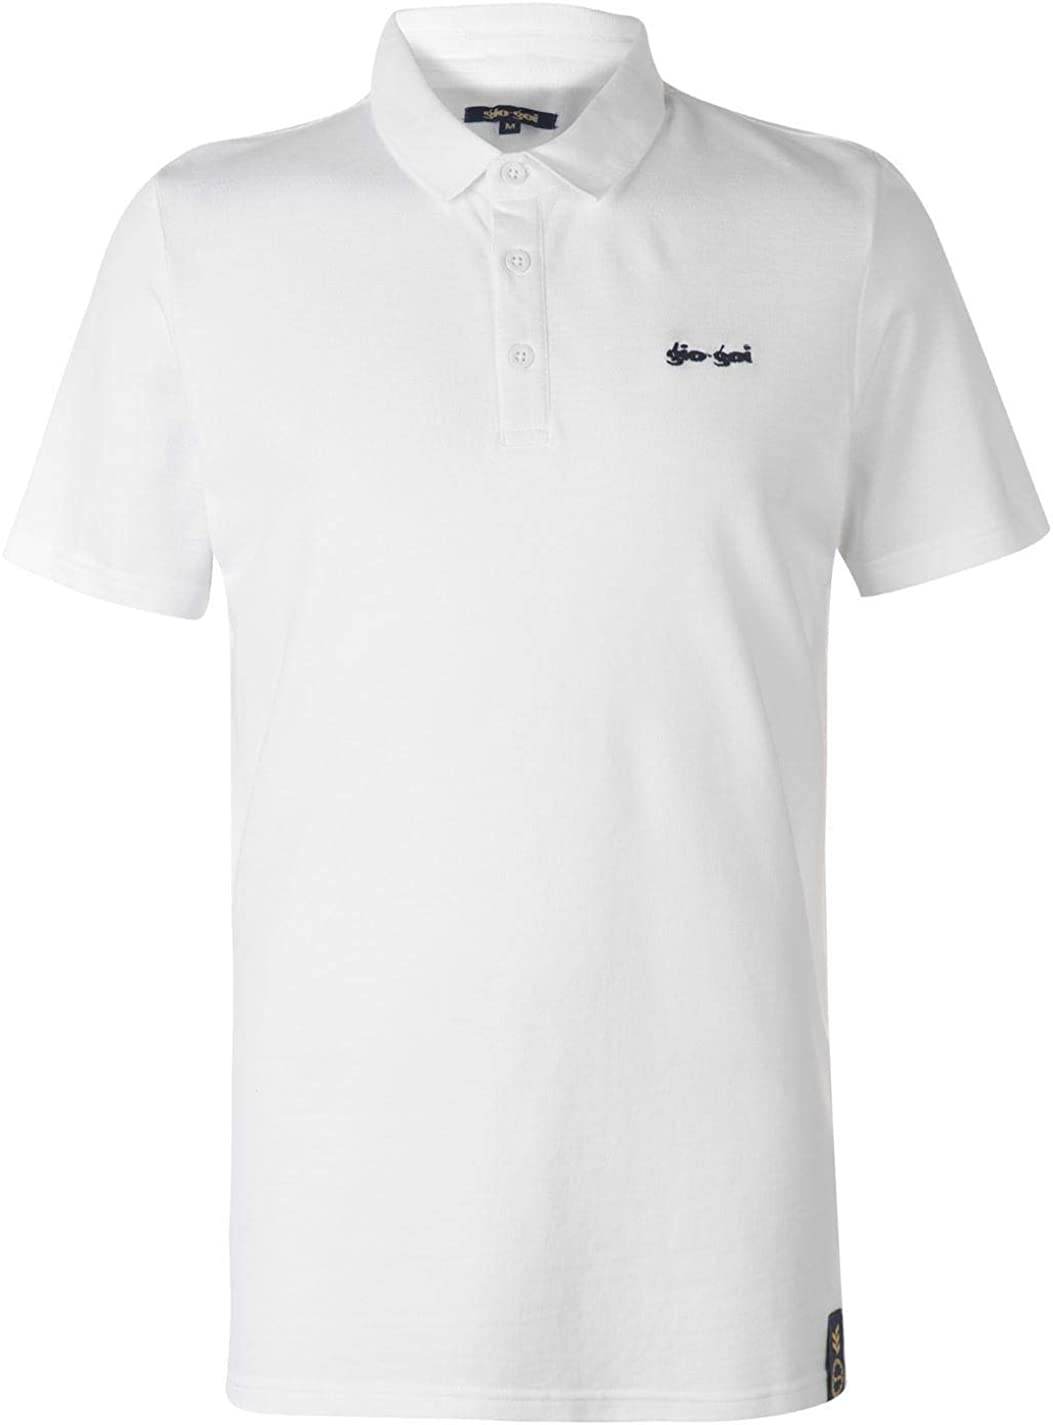 GioGoi Embroidered Polo Shirt Mens White Activewear Athleisure Top Tee X-Small